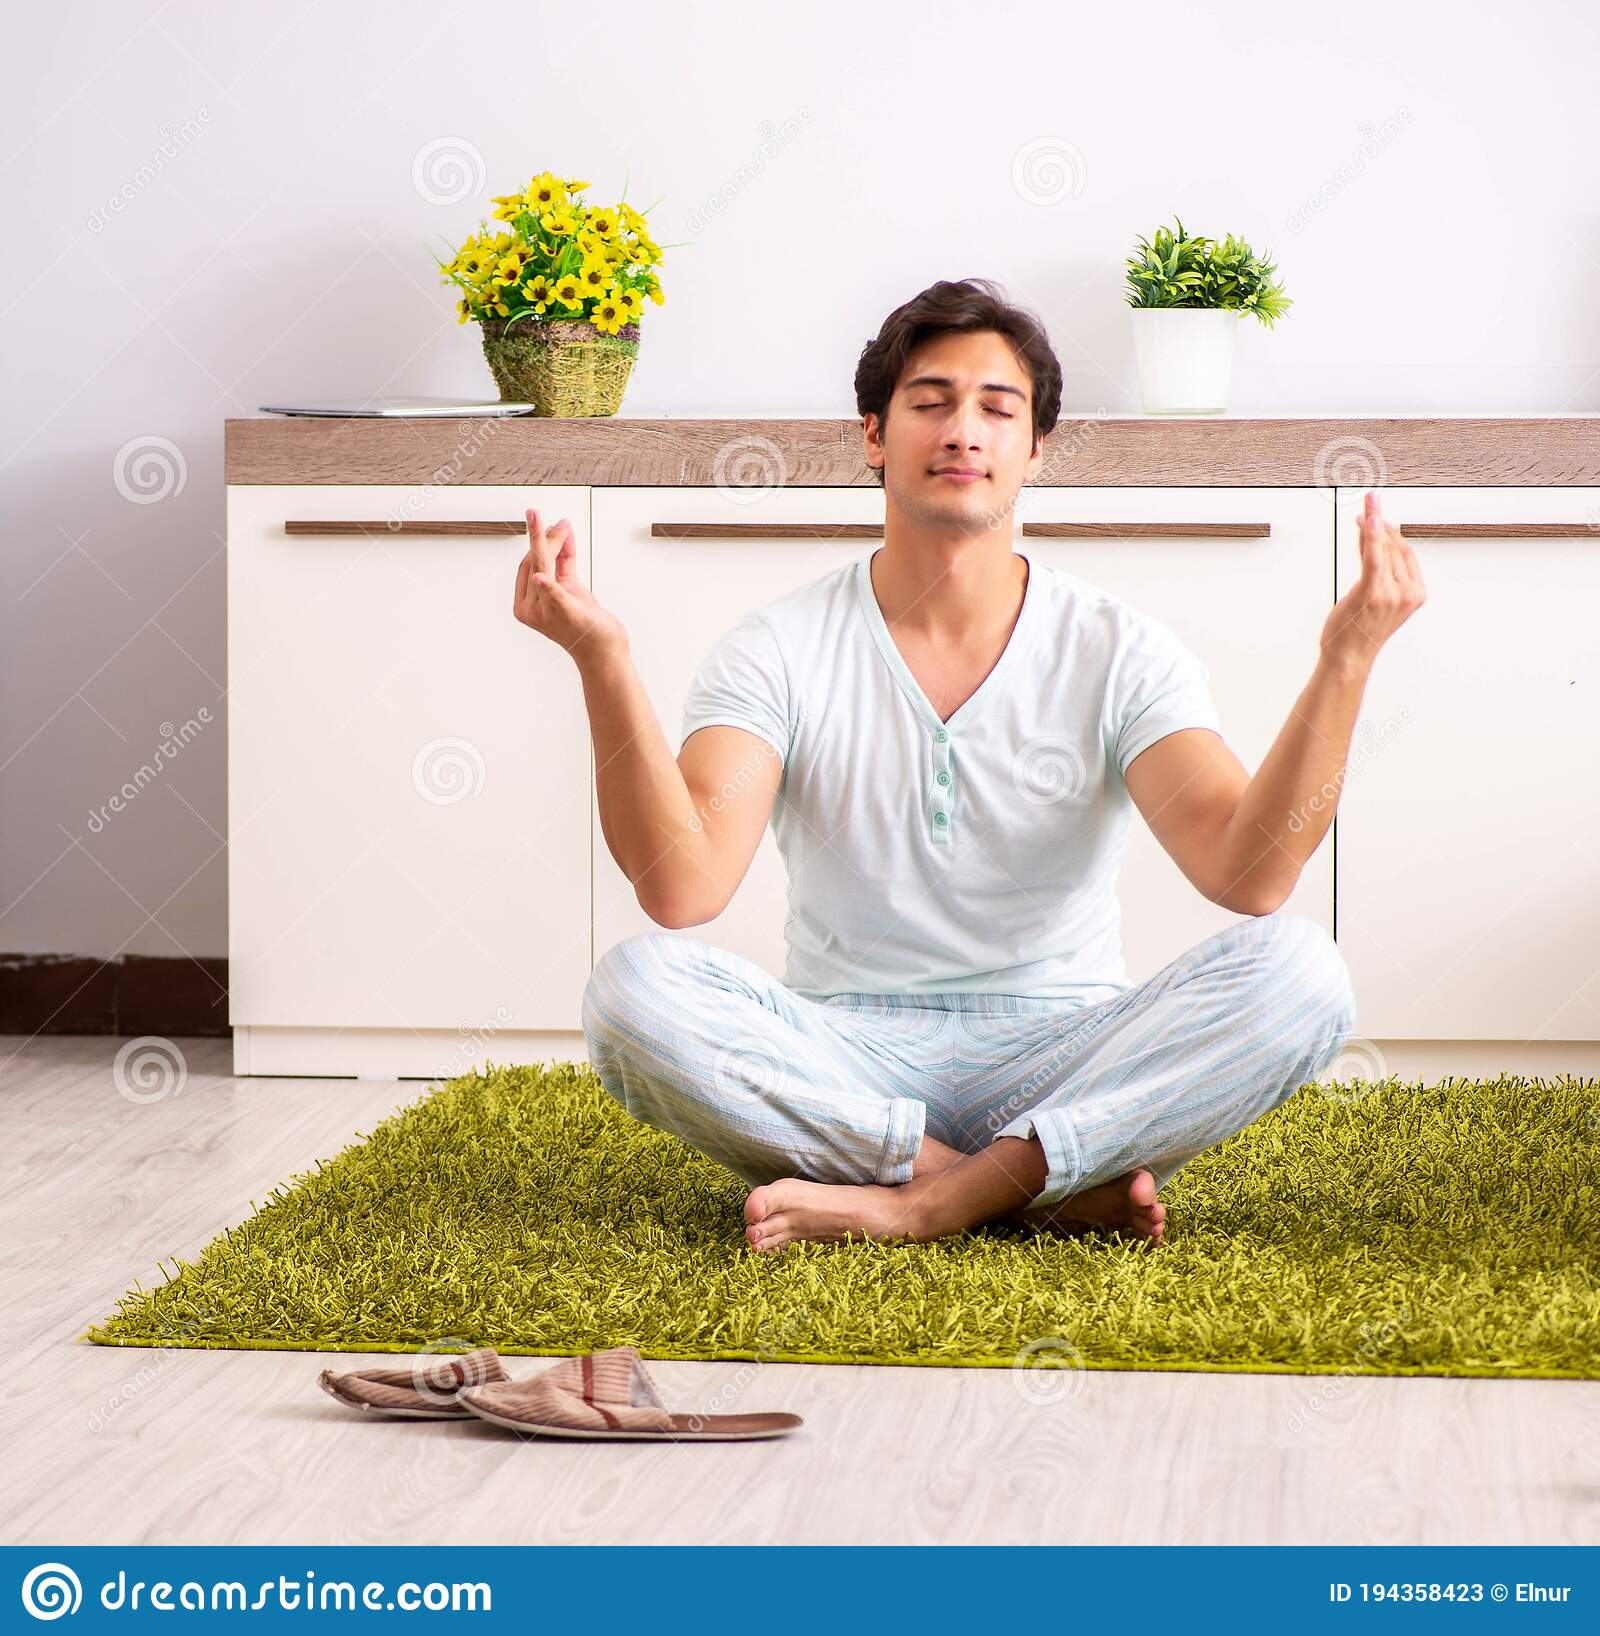 5 700 Yoga Bedroom Photos Free Royalty Free Stock Photos From Dreamstime